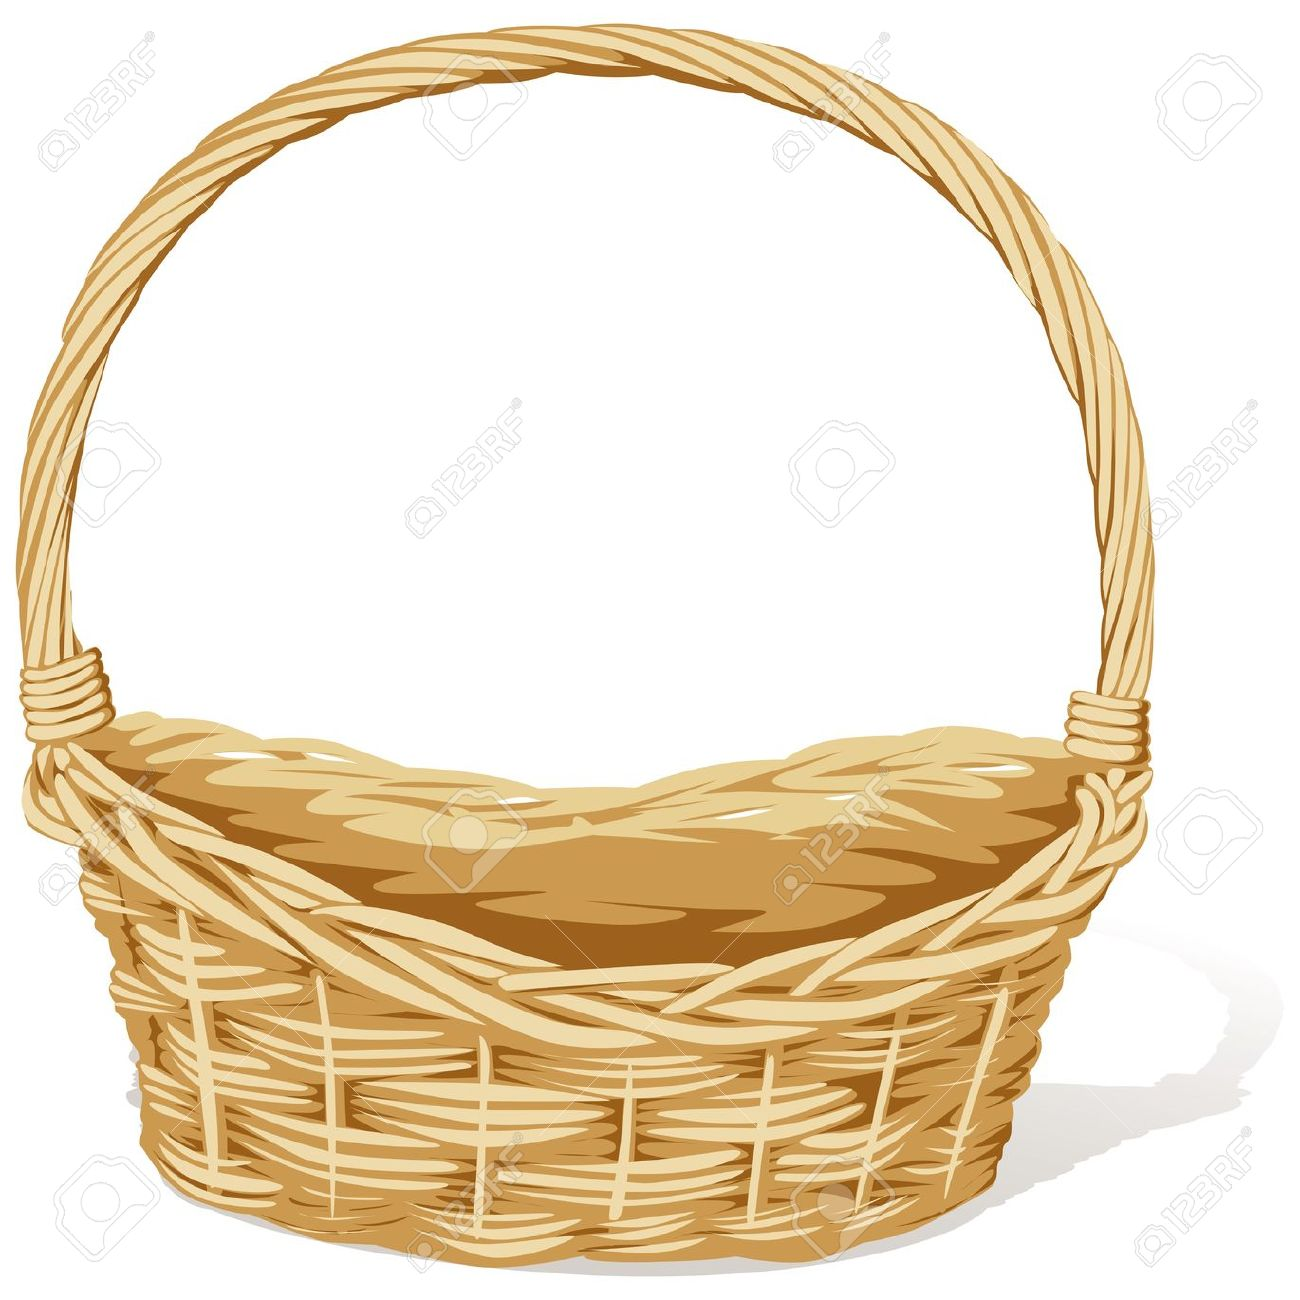 Basket clipart #11, Download drawings